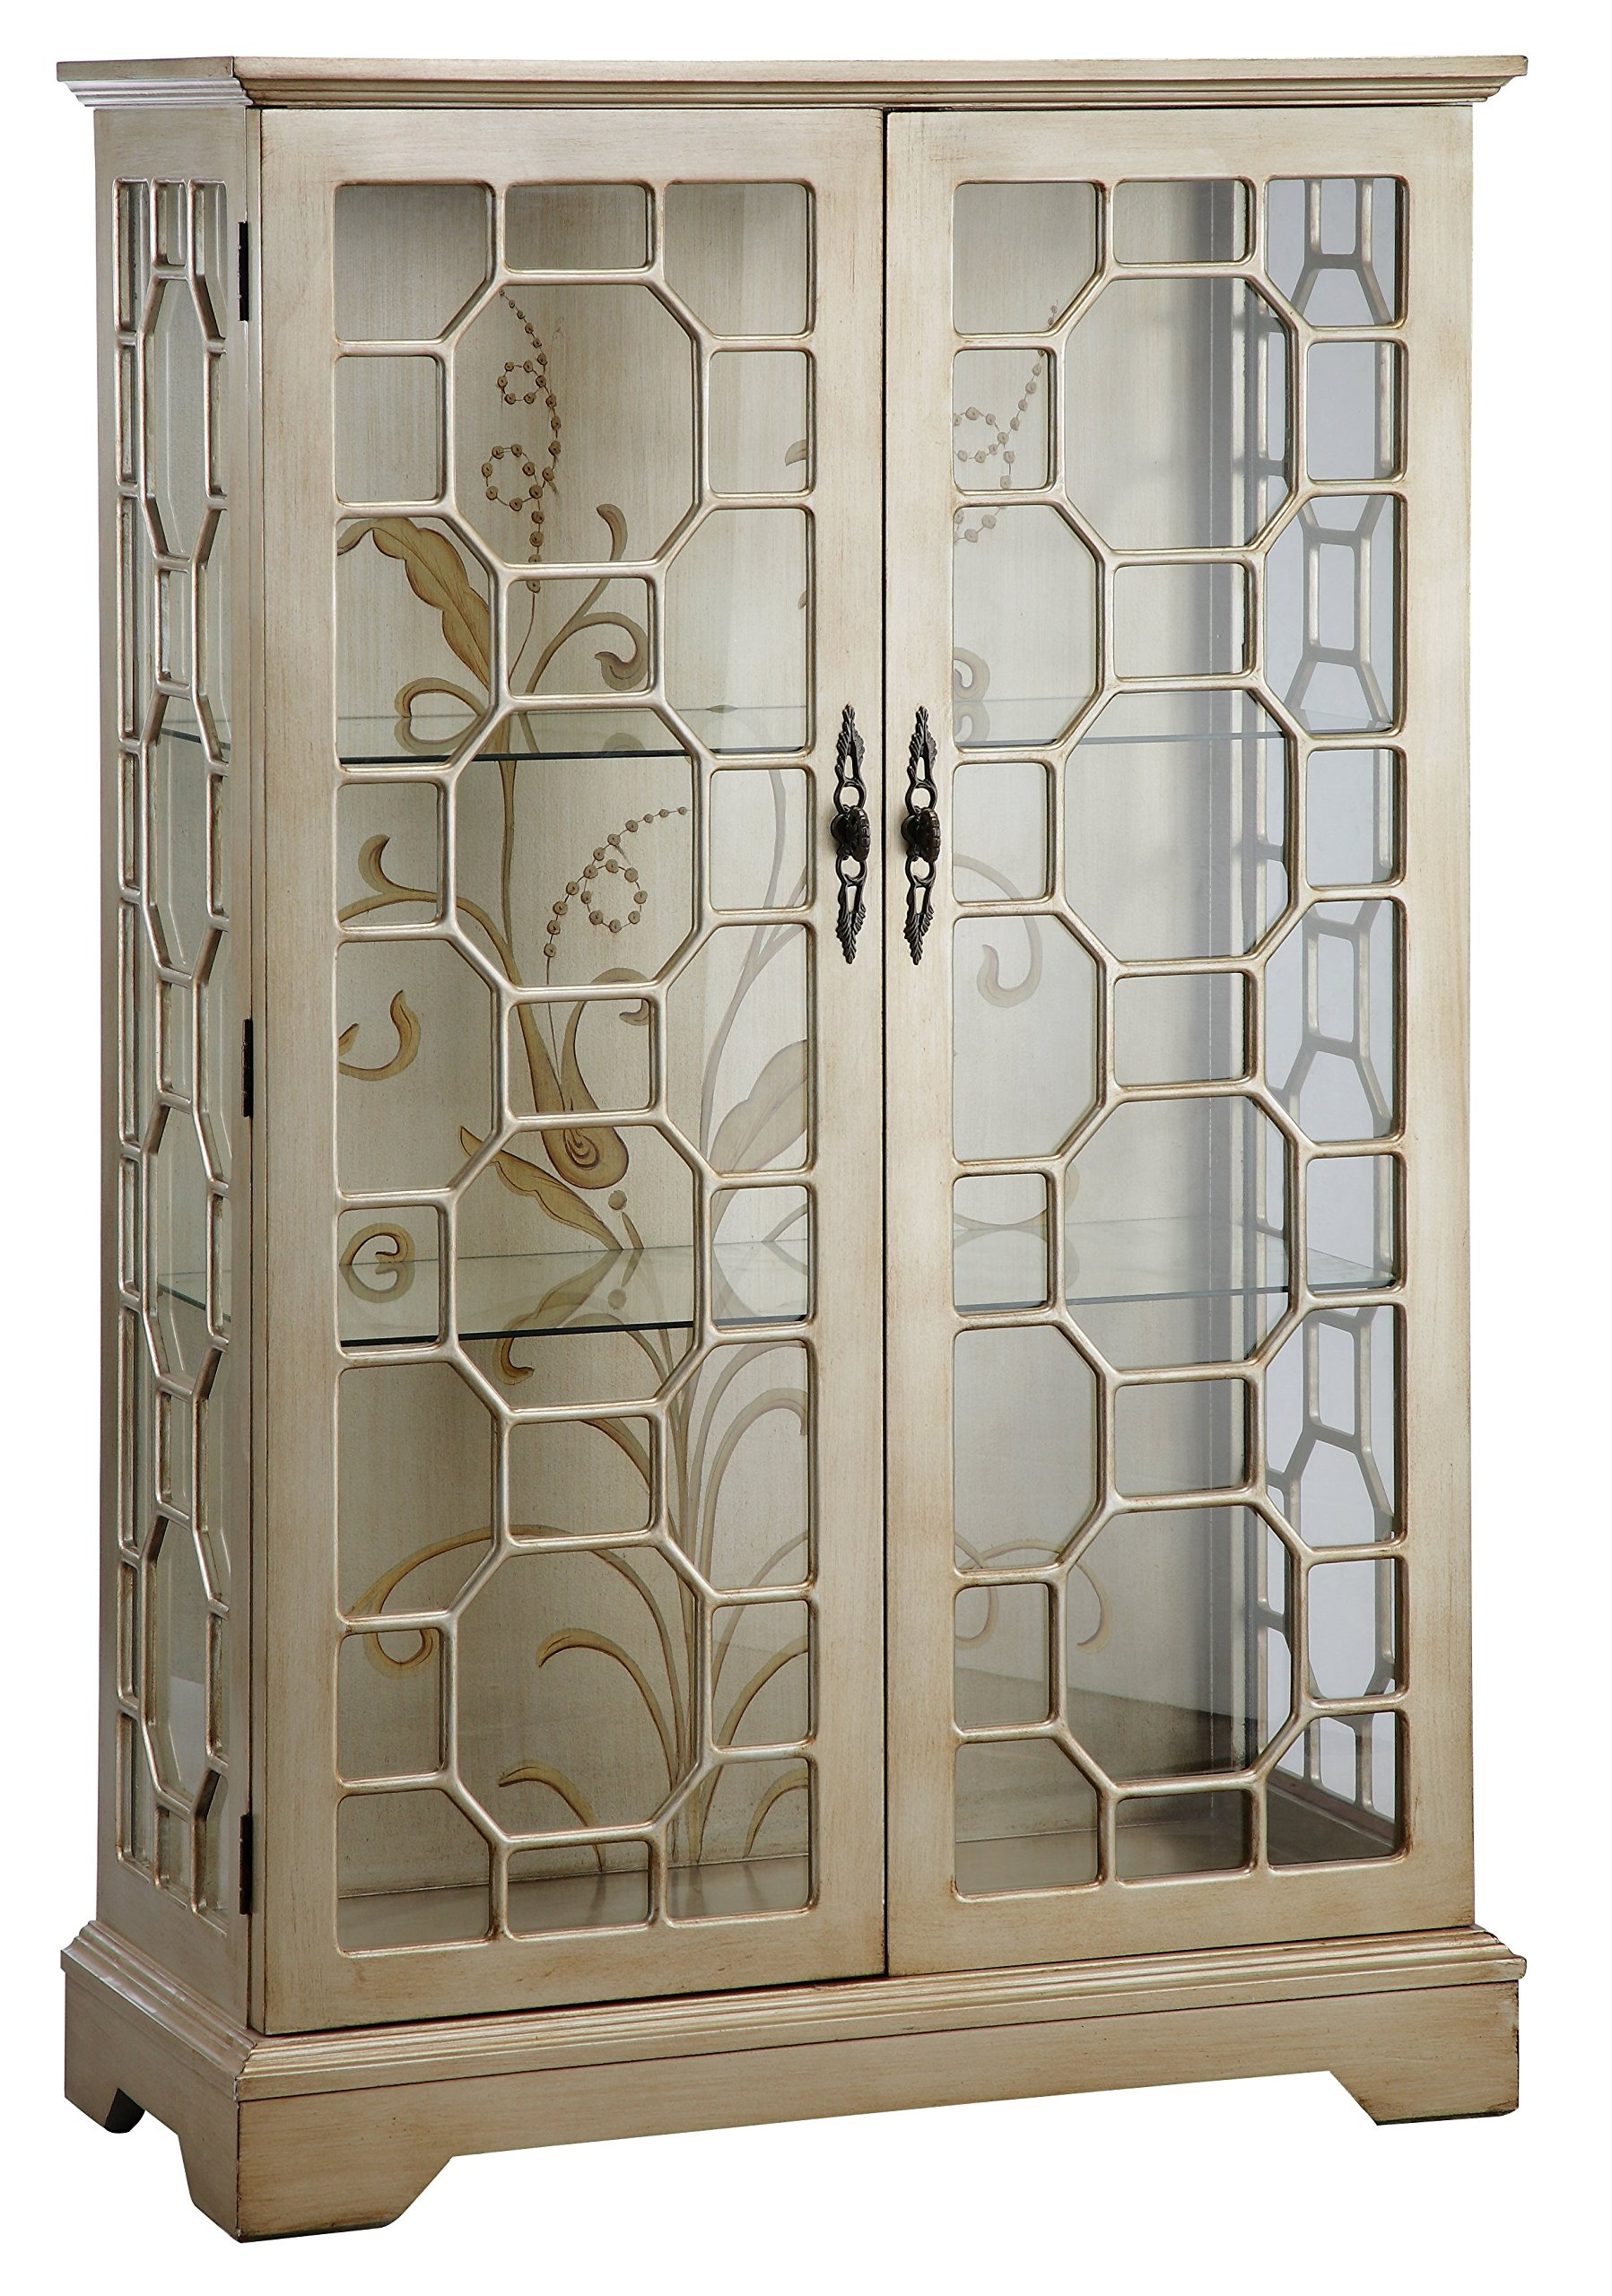 Stein World Furniture Diana Display Cabinet, Silver, Gold